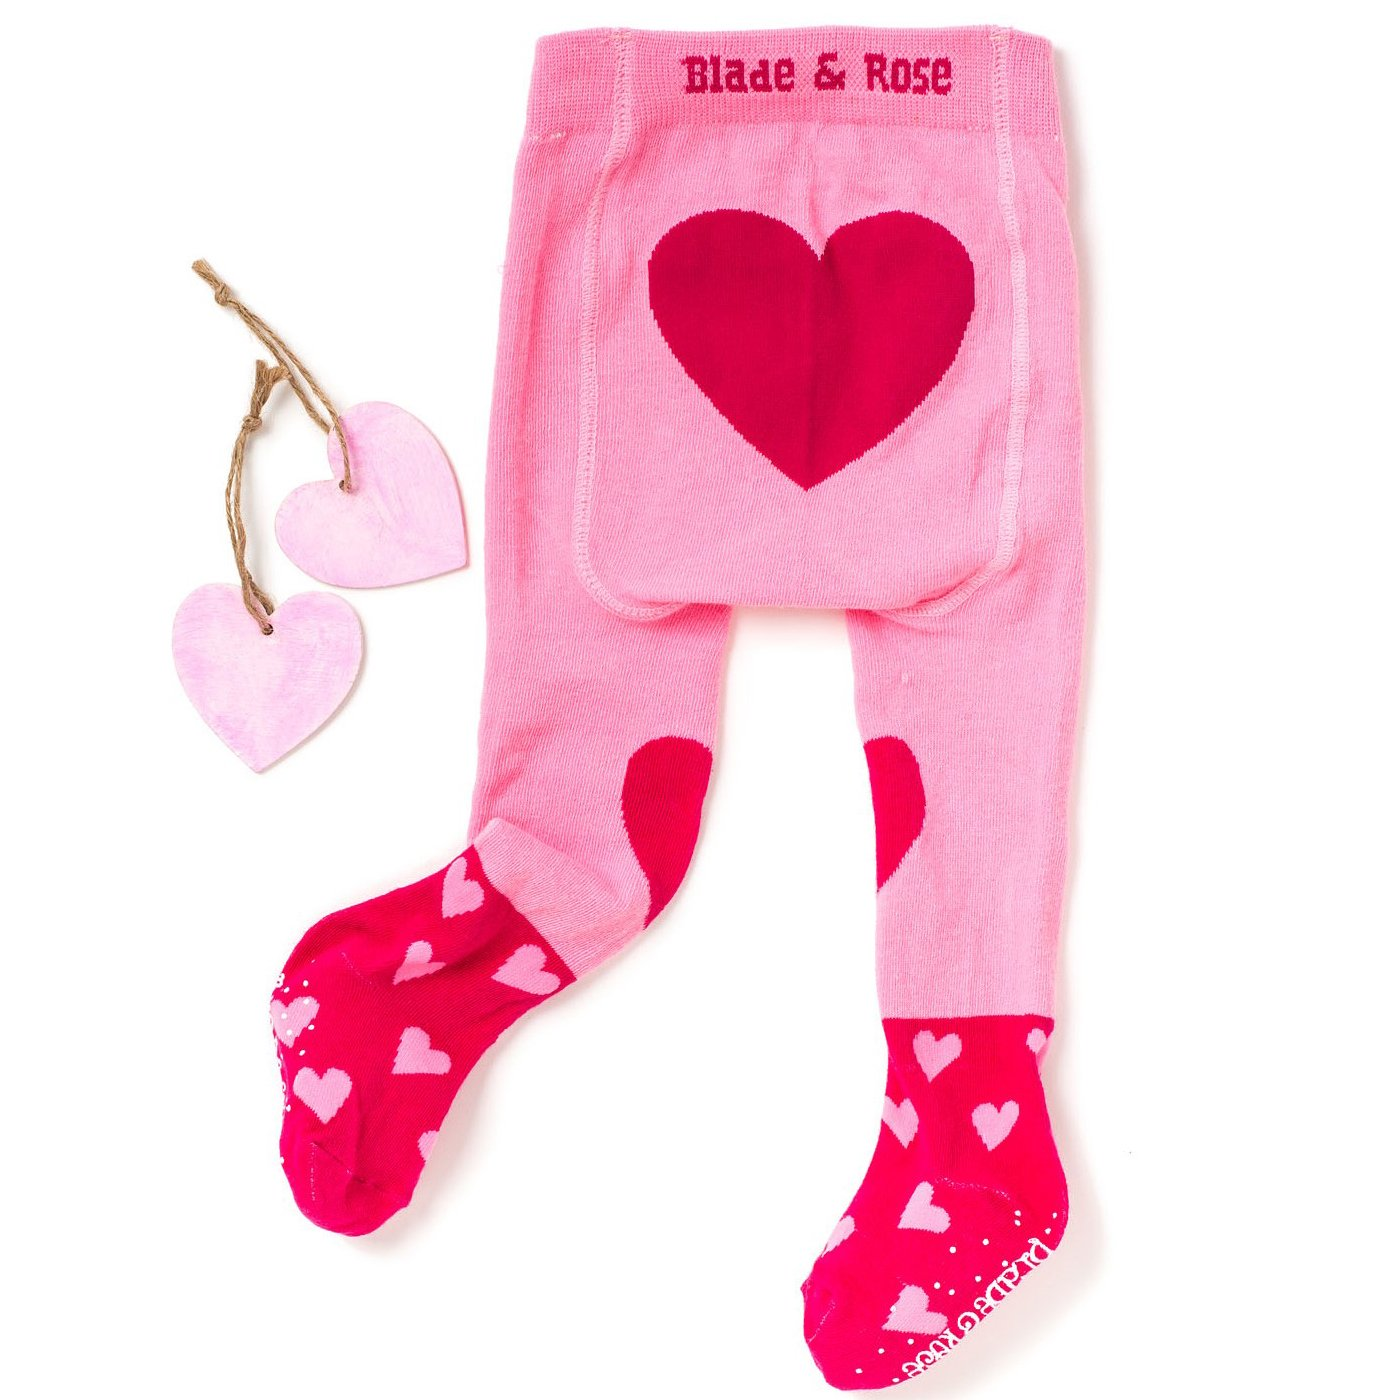 96c3e069f743 Blade   Rose Heart Tights for Baby Girls